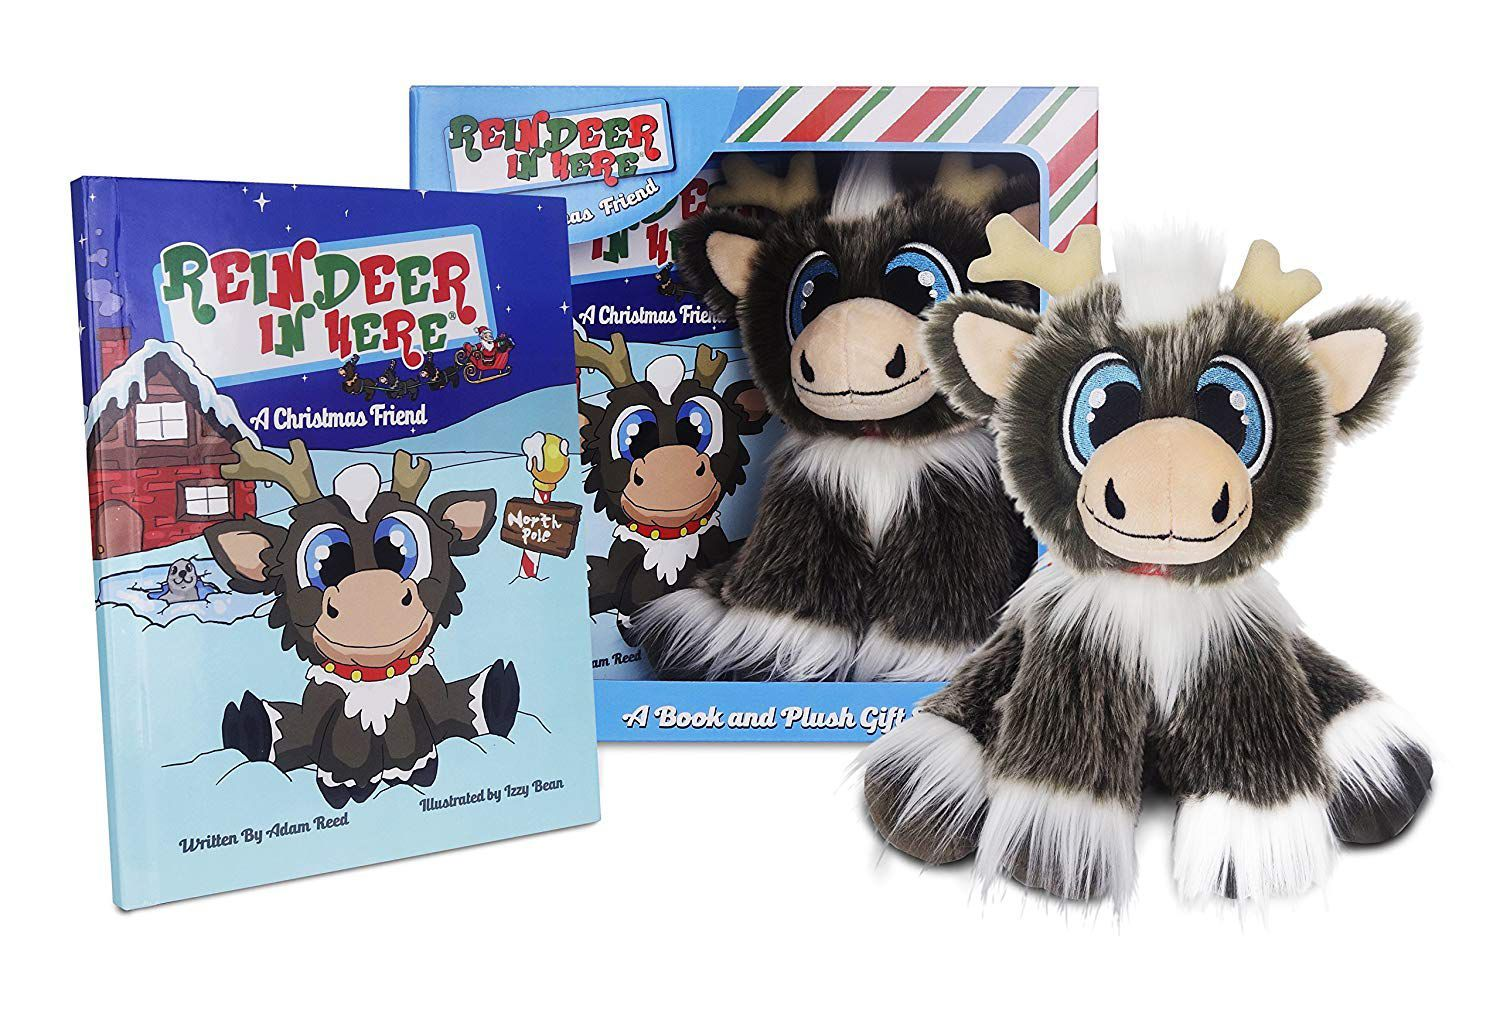 This New Reindeer In Here Toy Is The More Positive Version Of Your